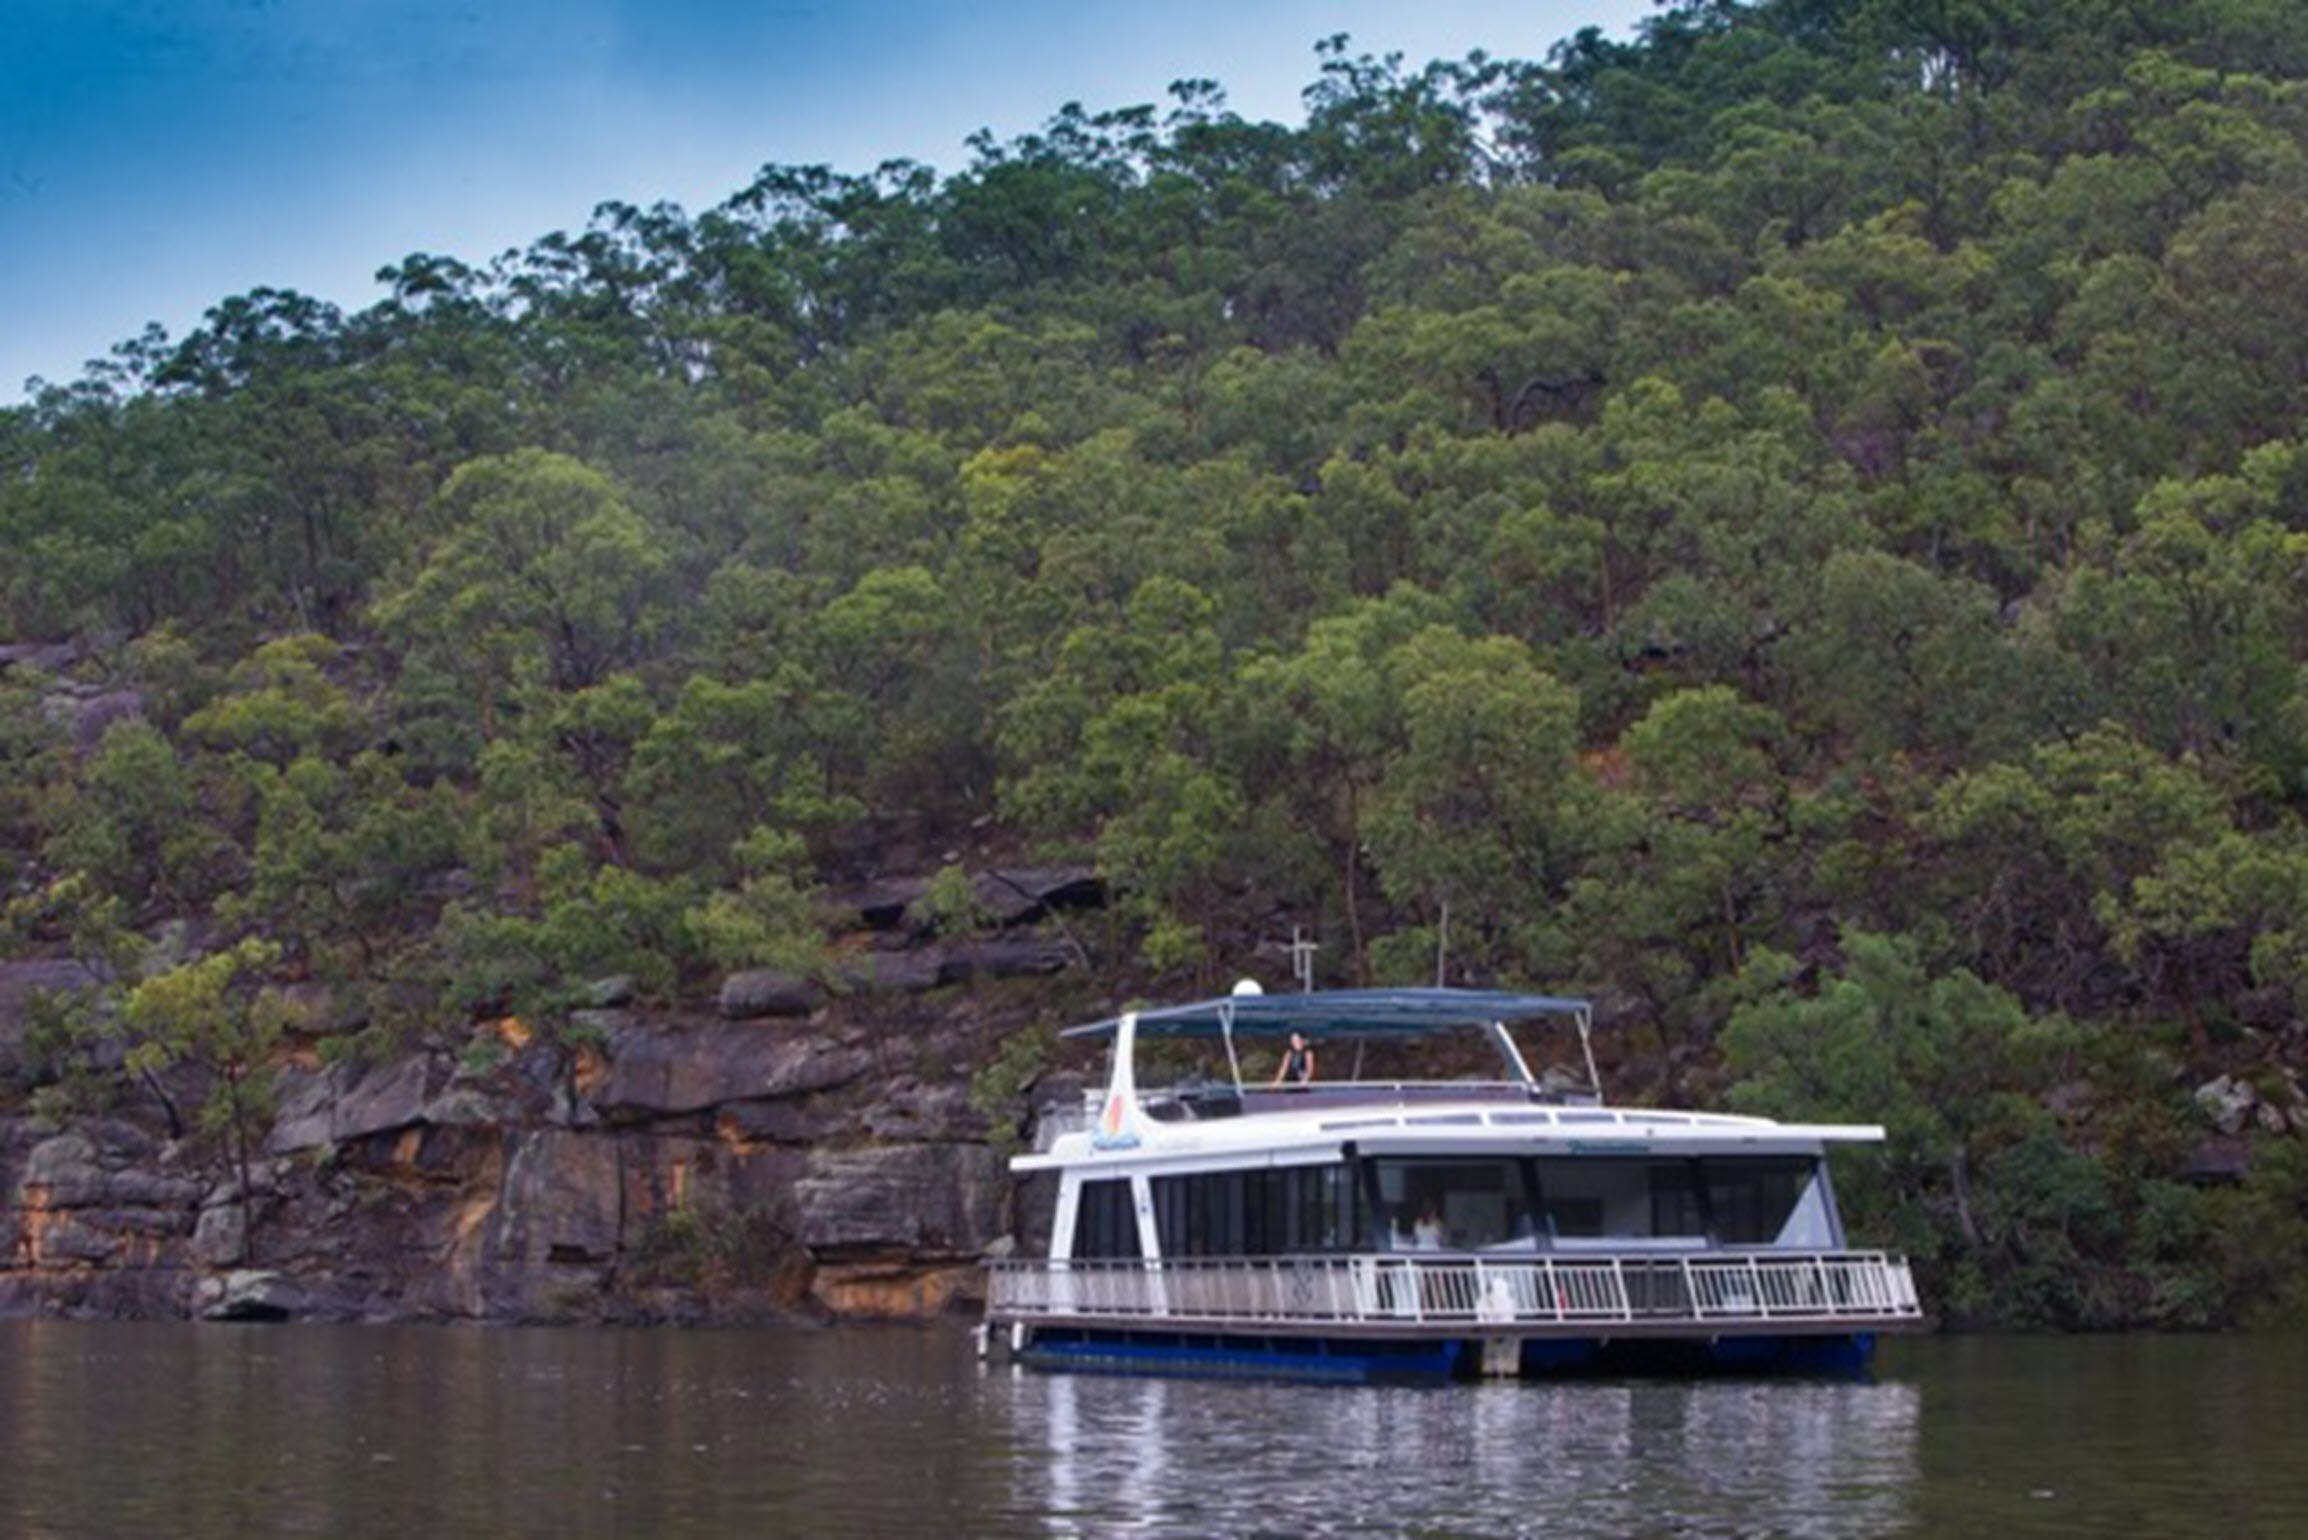 Able Hawkesbury River Houseboats - Kayaks and Dayboats - C Tourism